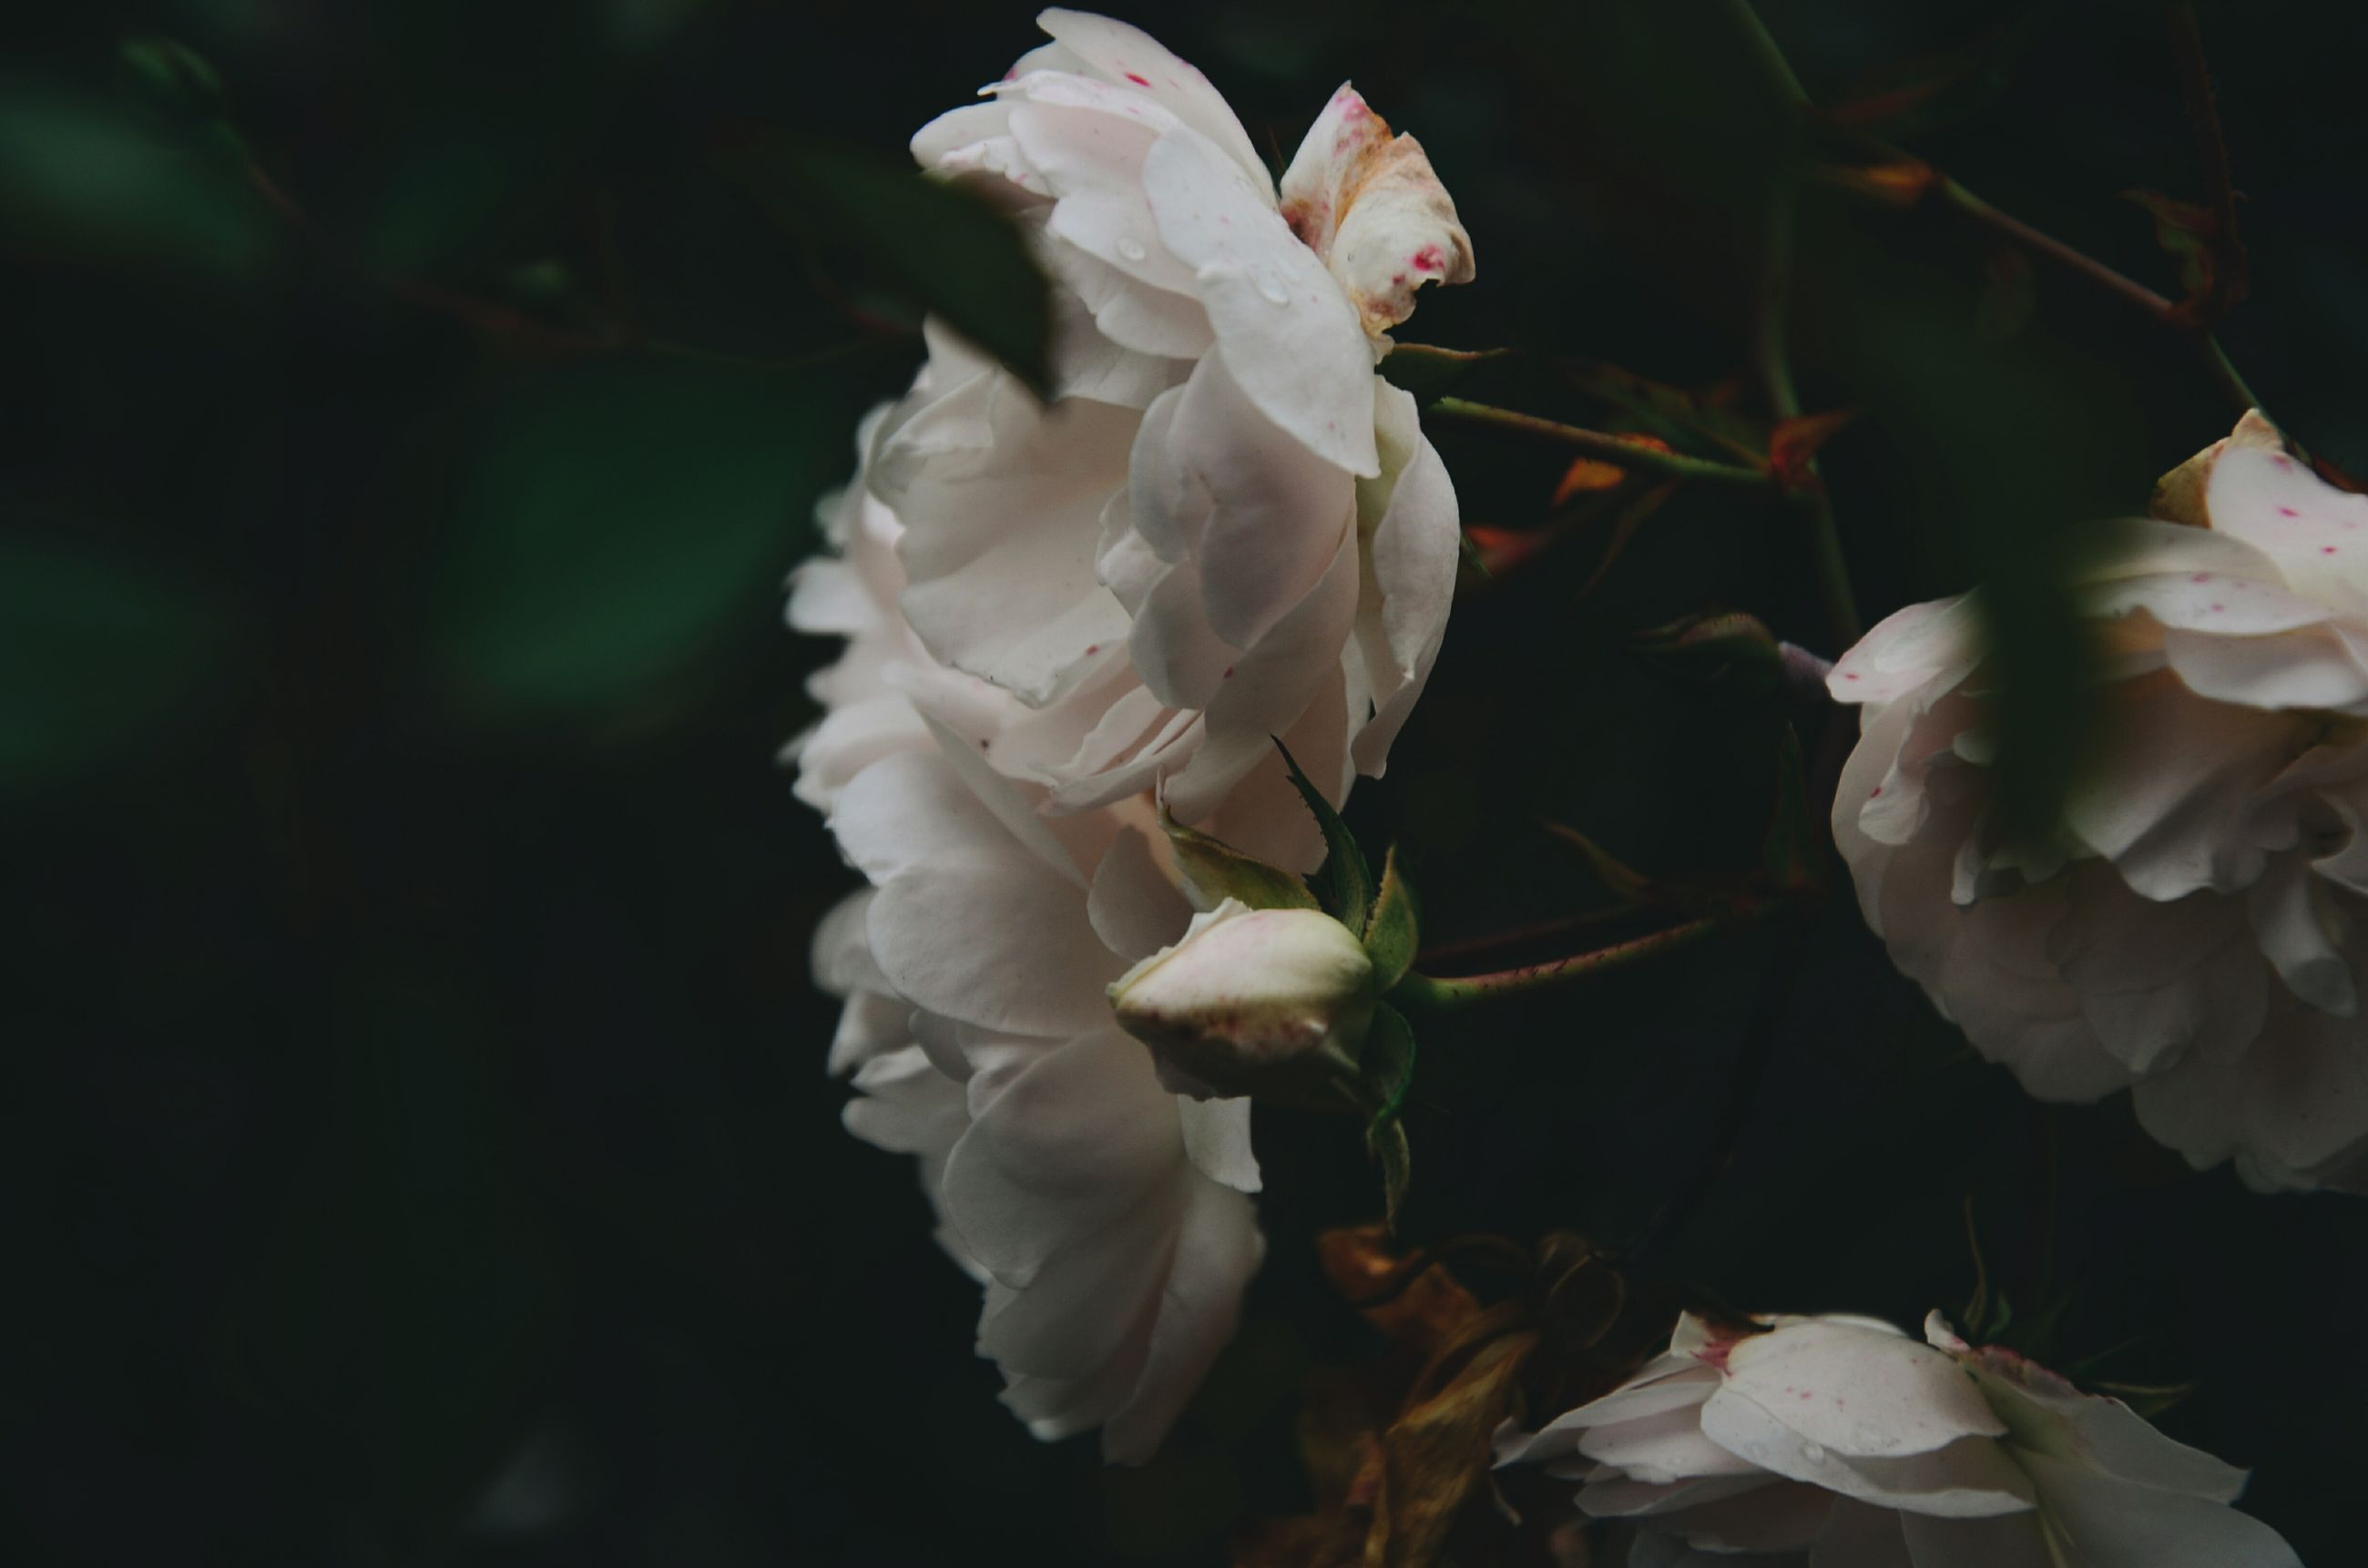 flower, petal, fragility, freshness, flower head, white color, growth, beauty in nature, close-up, nature, blooming, focus on foreground, plant, in bloom, leaf, white, blossom, stem, bud, outdoors